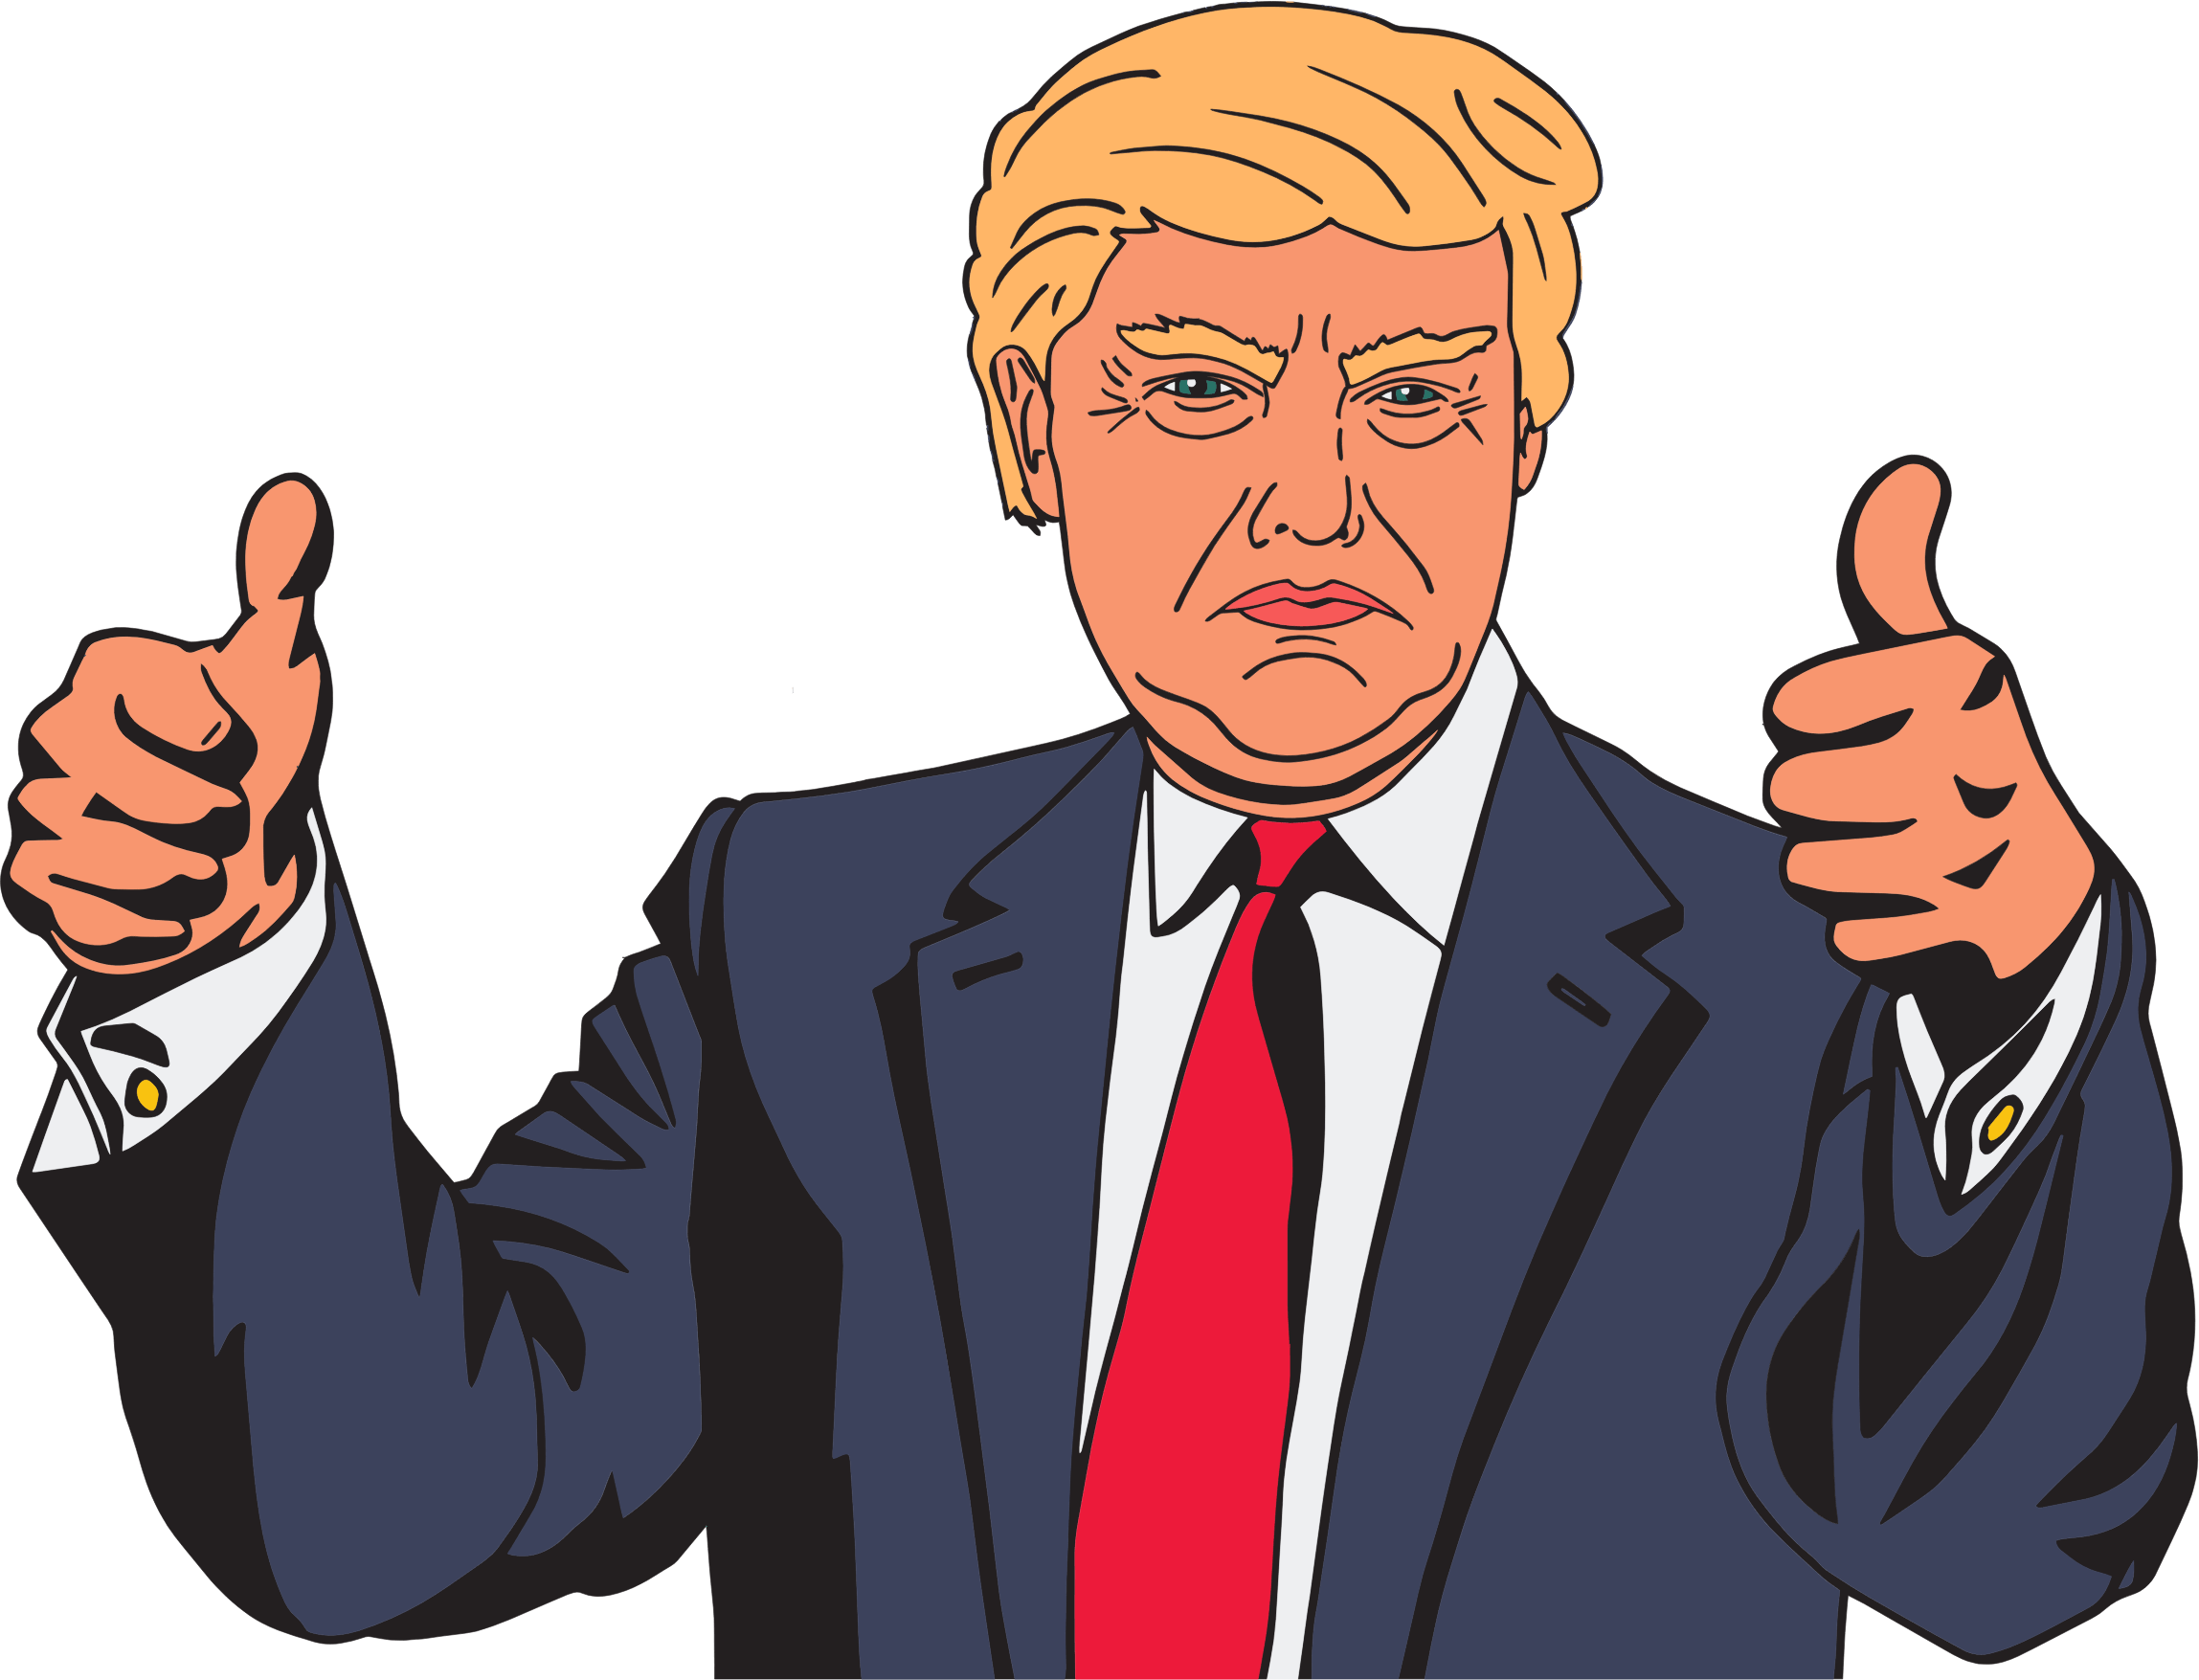 Trump clipart wallpapers for free download and use image in